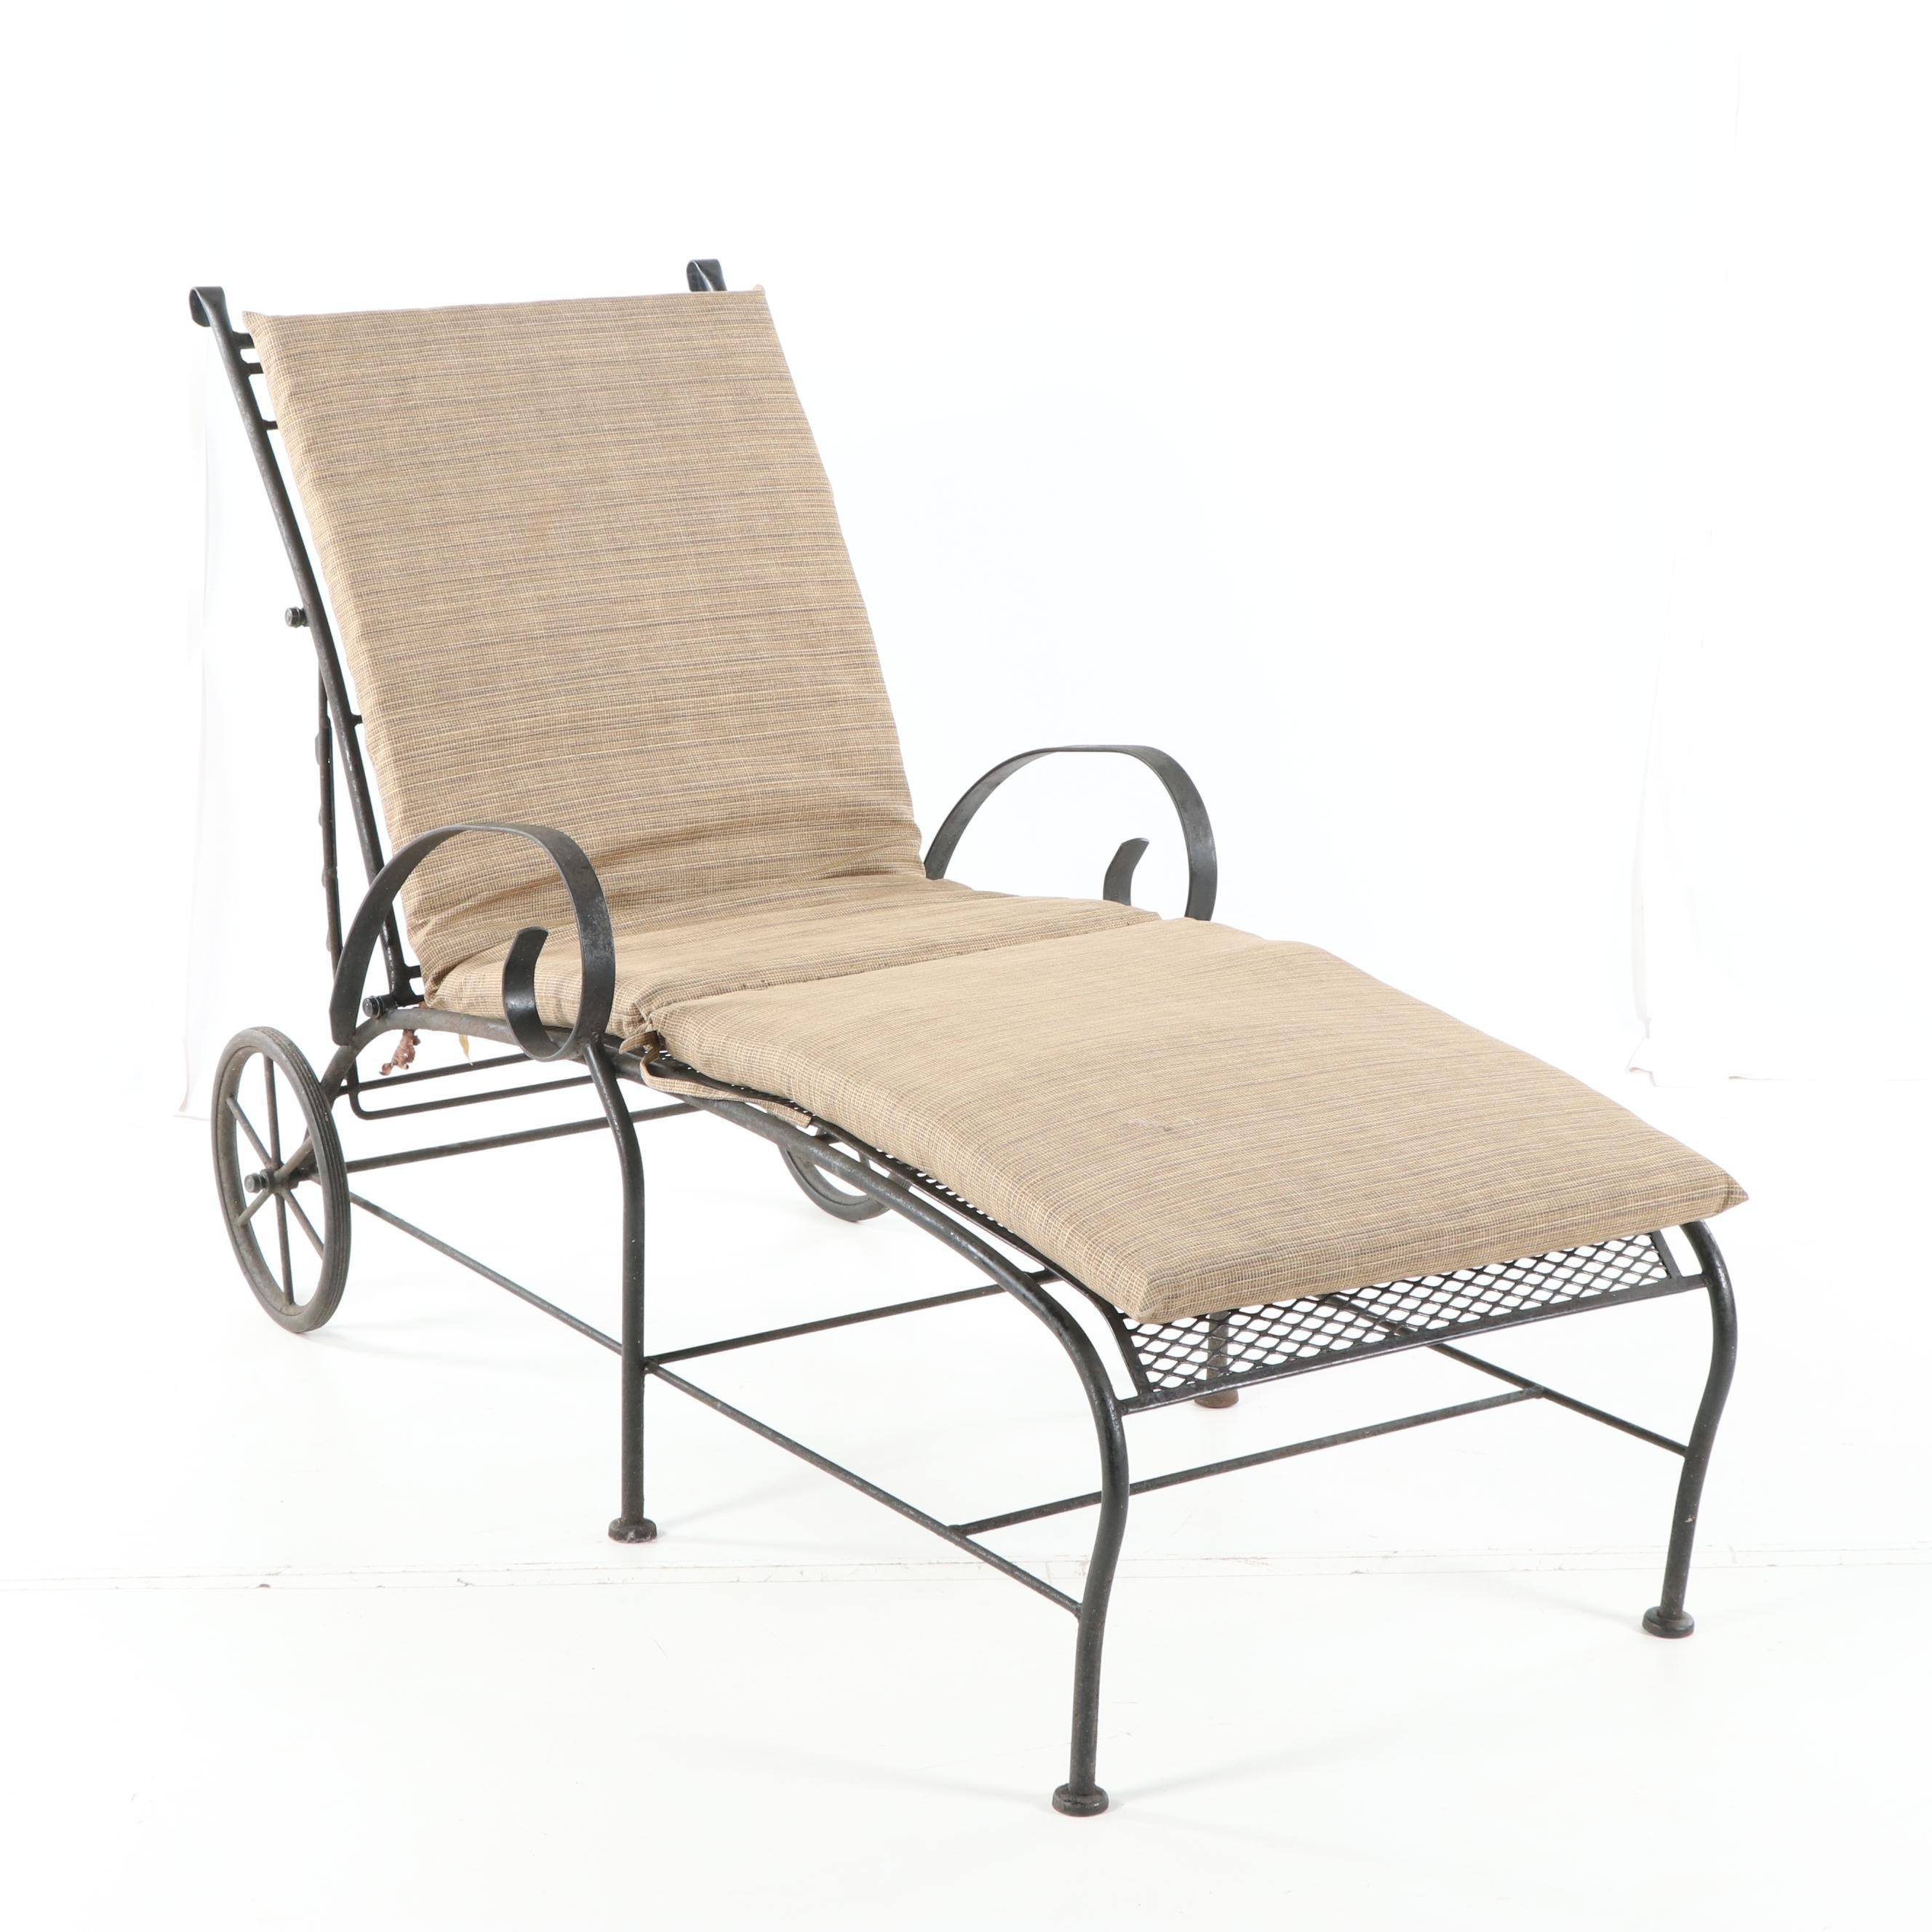 Metal Patio Chaise Lounge with Adjustable Back, 21st Century